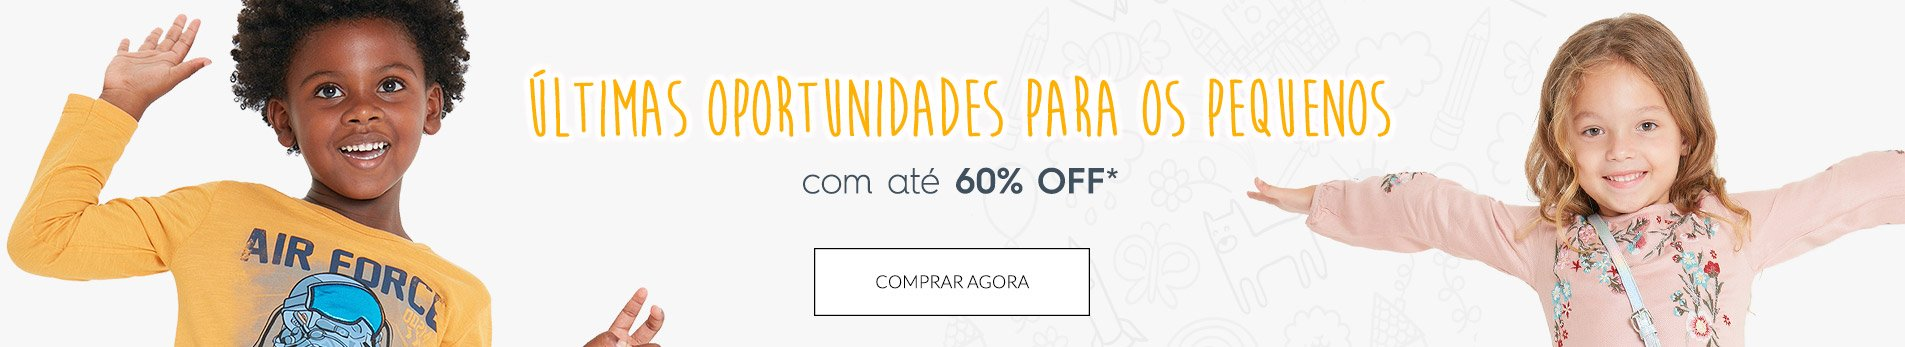 201908 banner ultimasoportunidades 60off 1905x347 desk